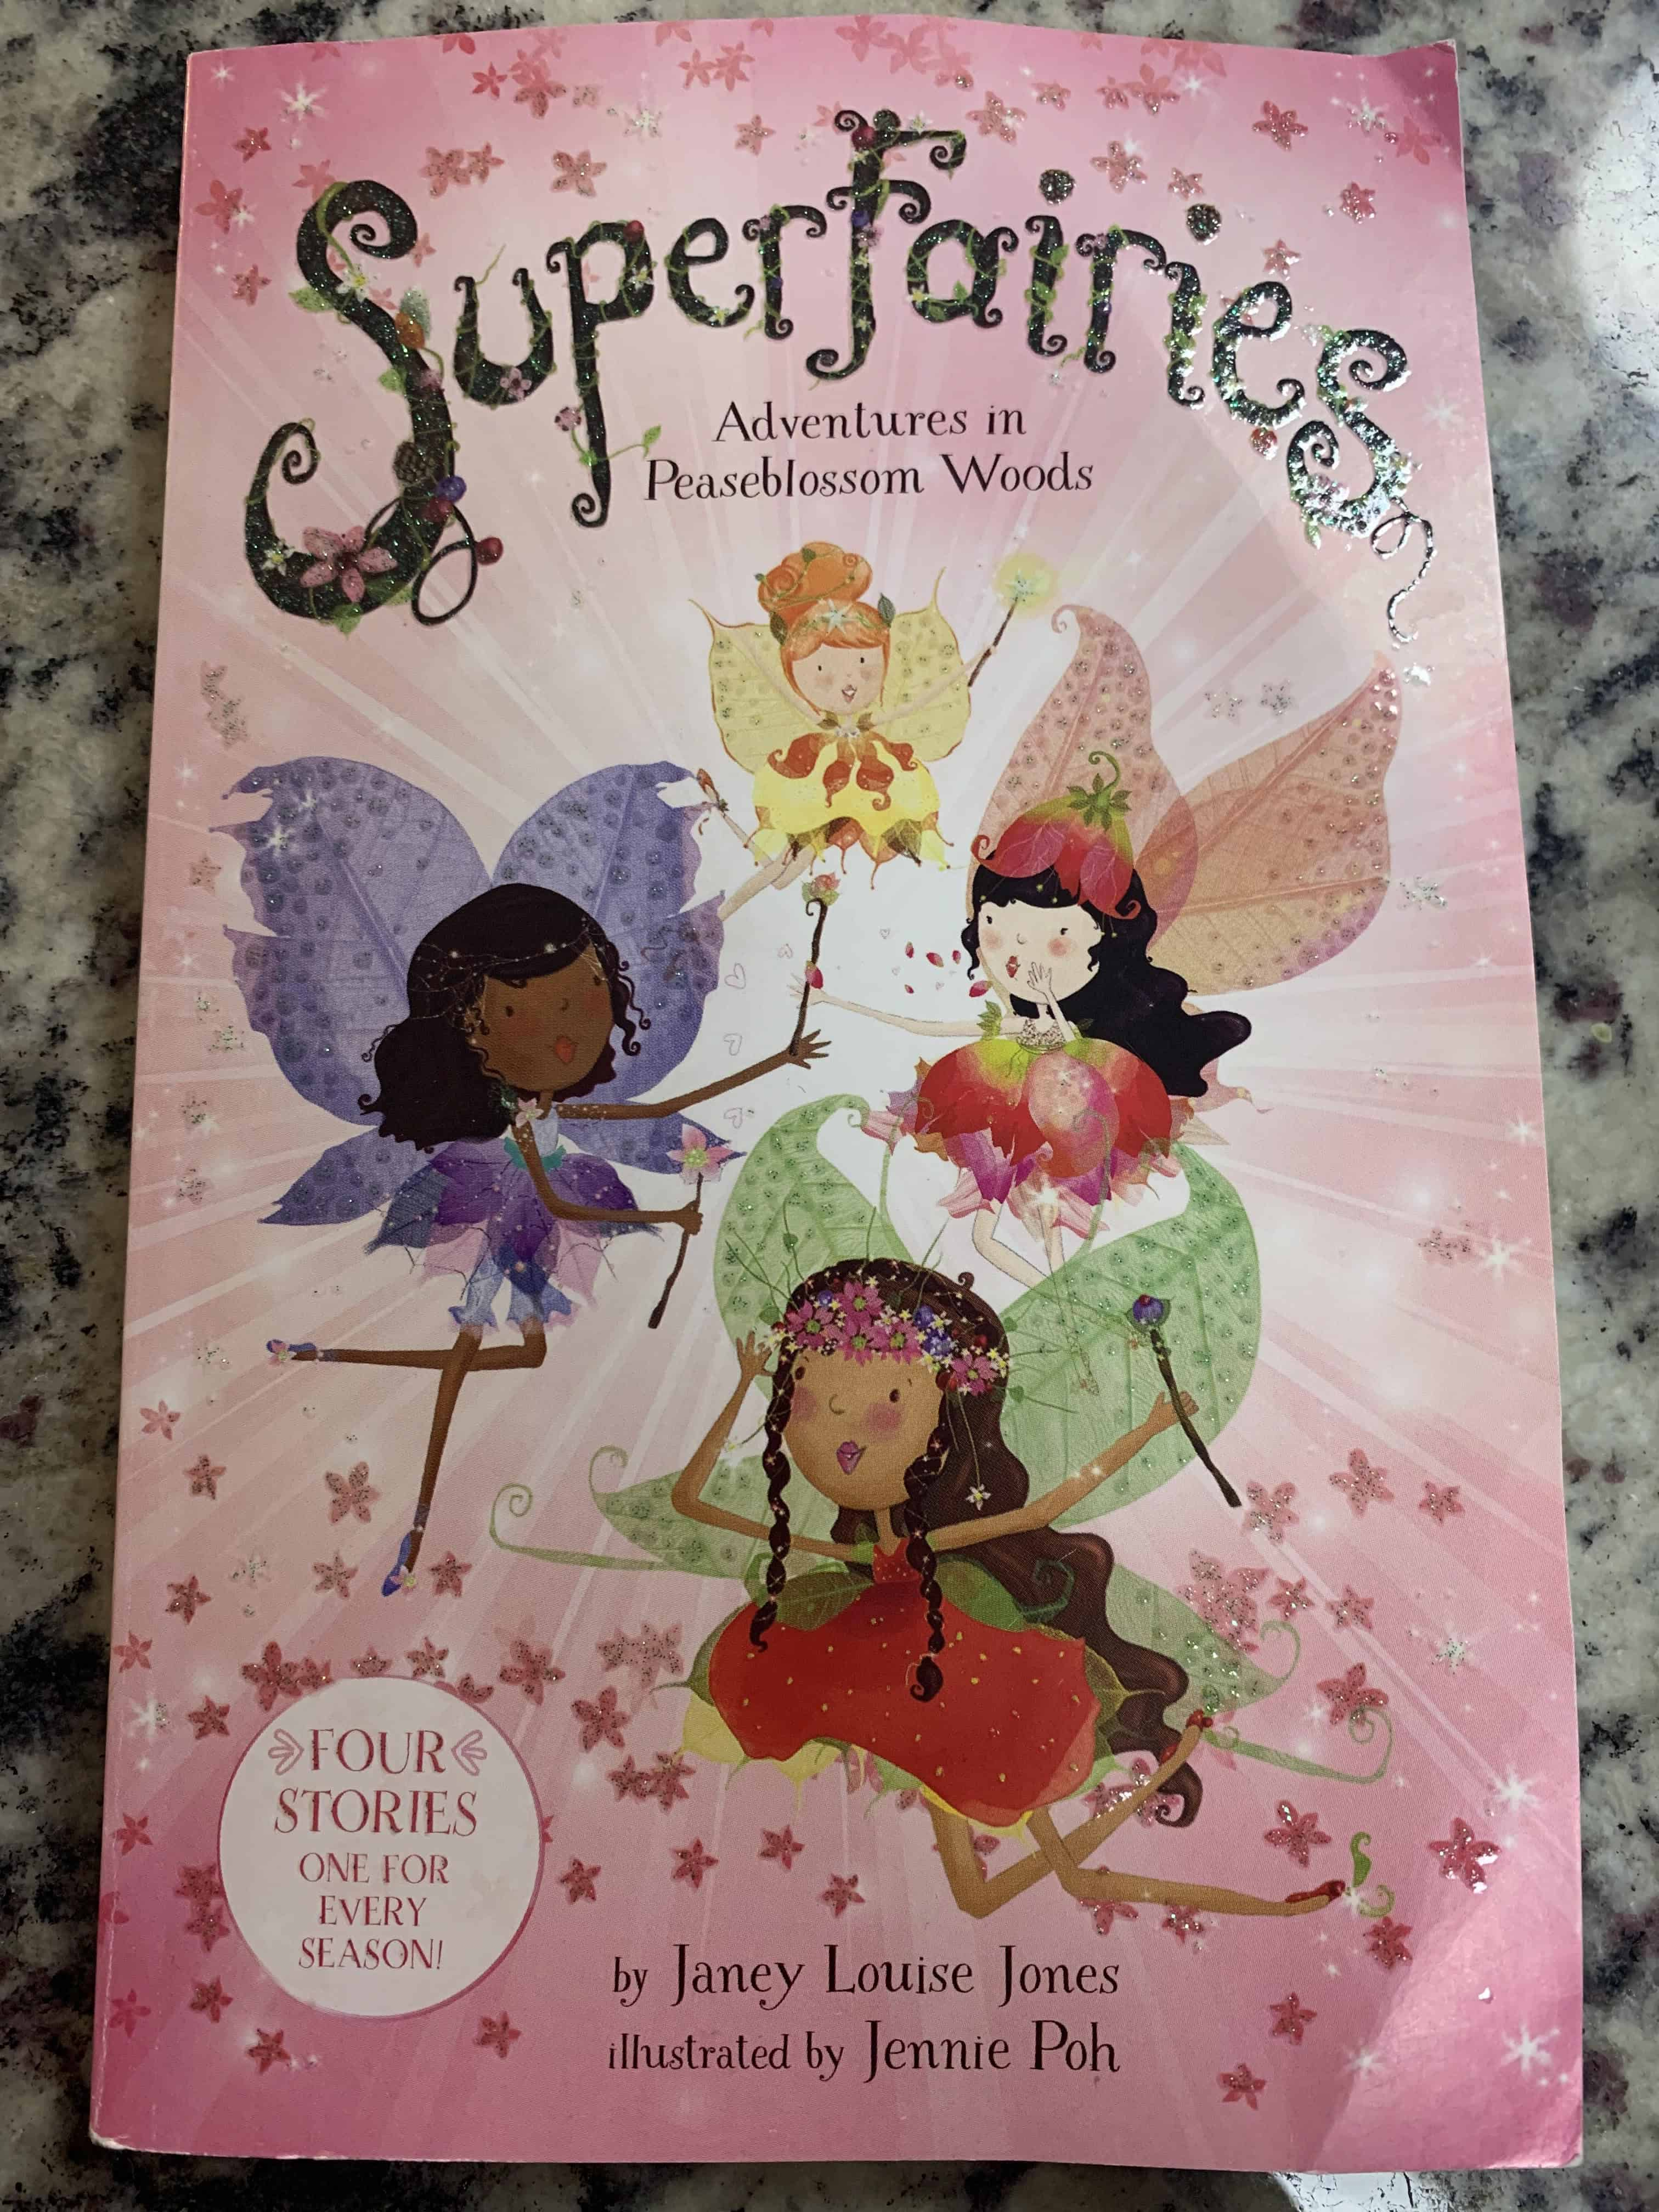 Superfairies Cover - Chapter Books for 2nd Grade Girls